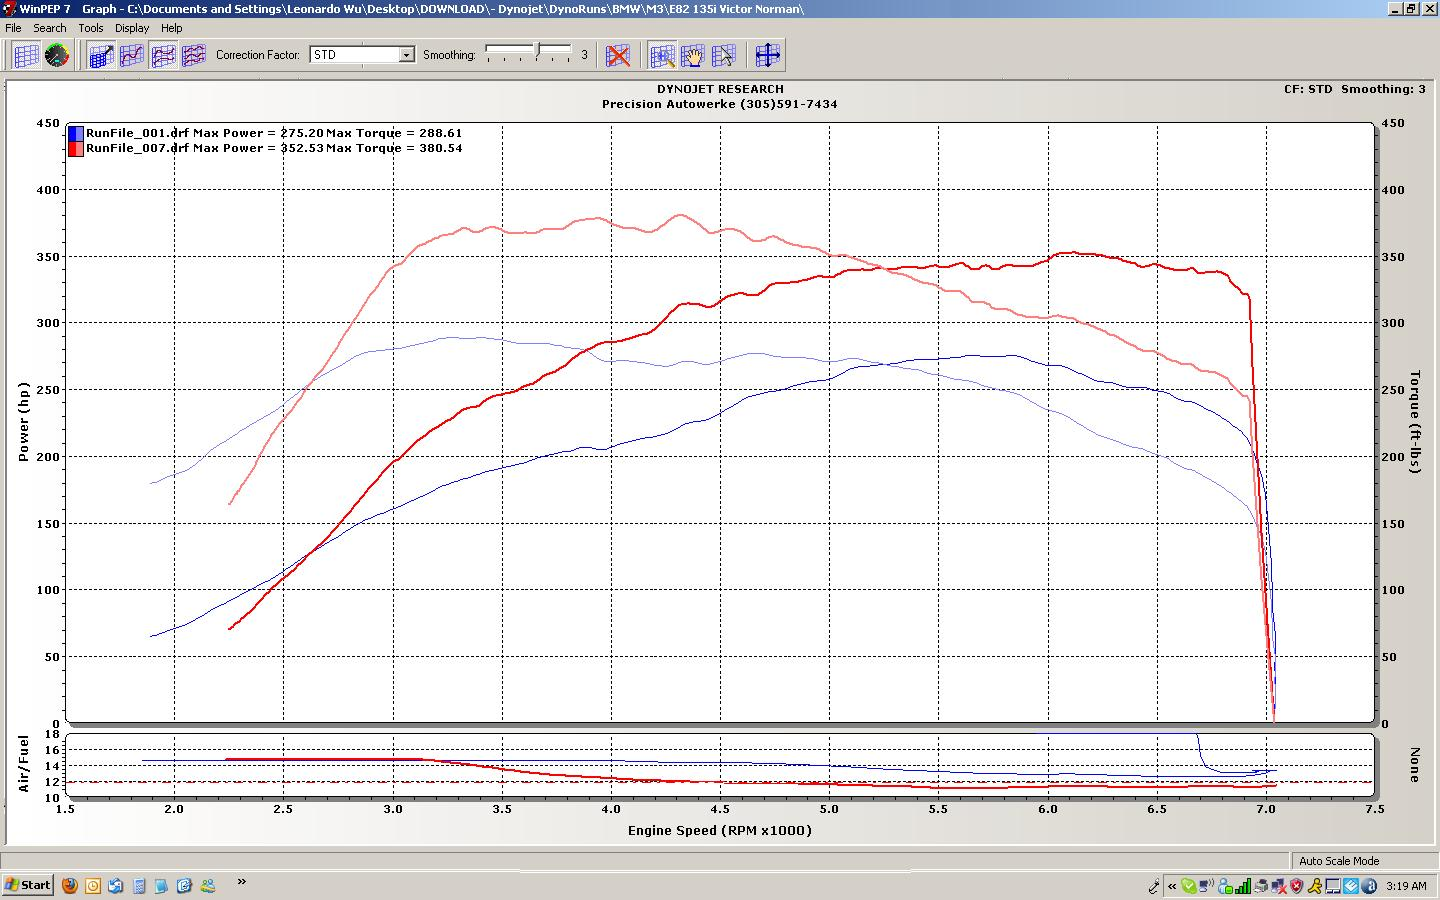 BMW 135i Dyno Graph Results